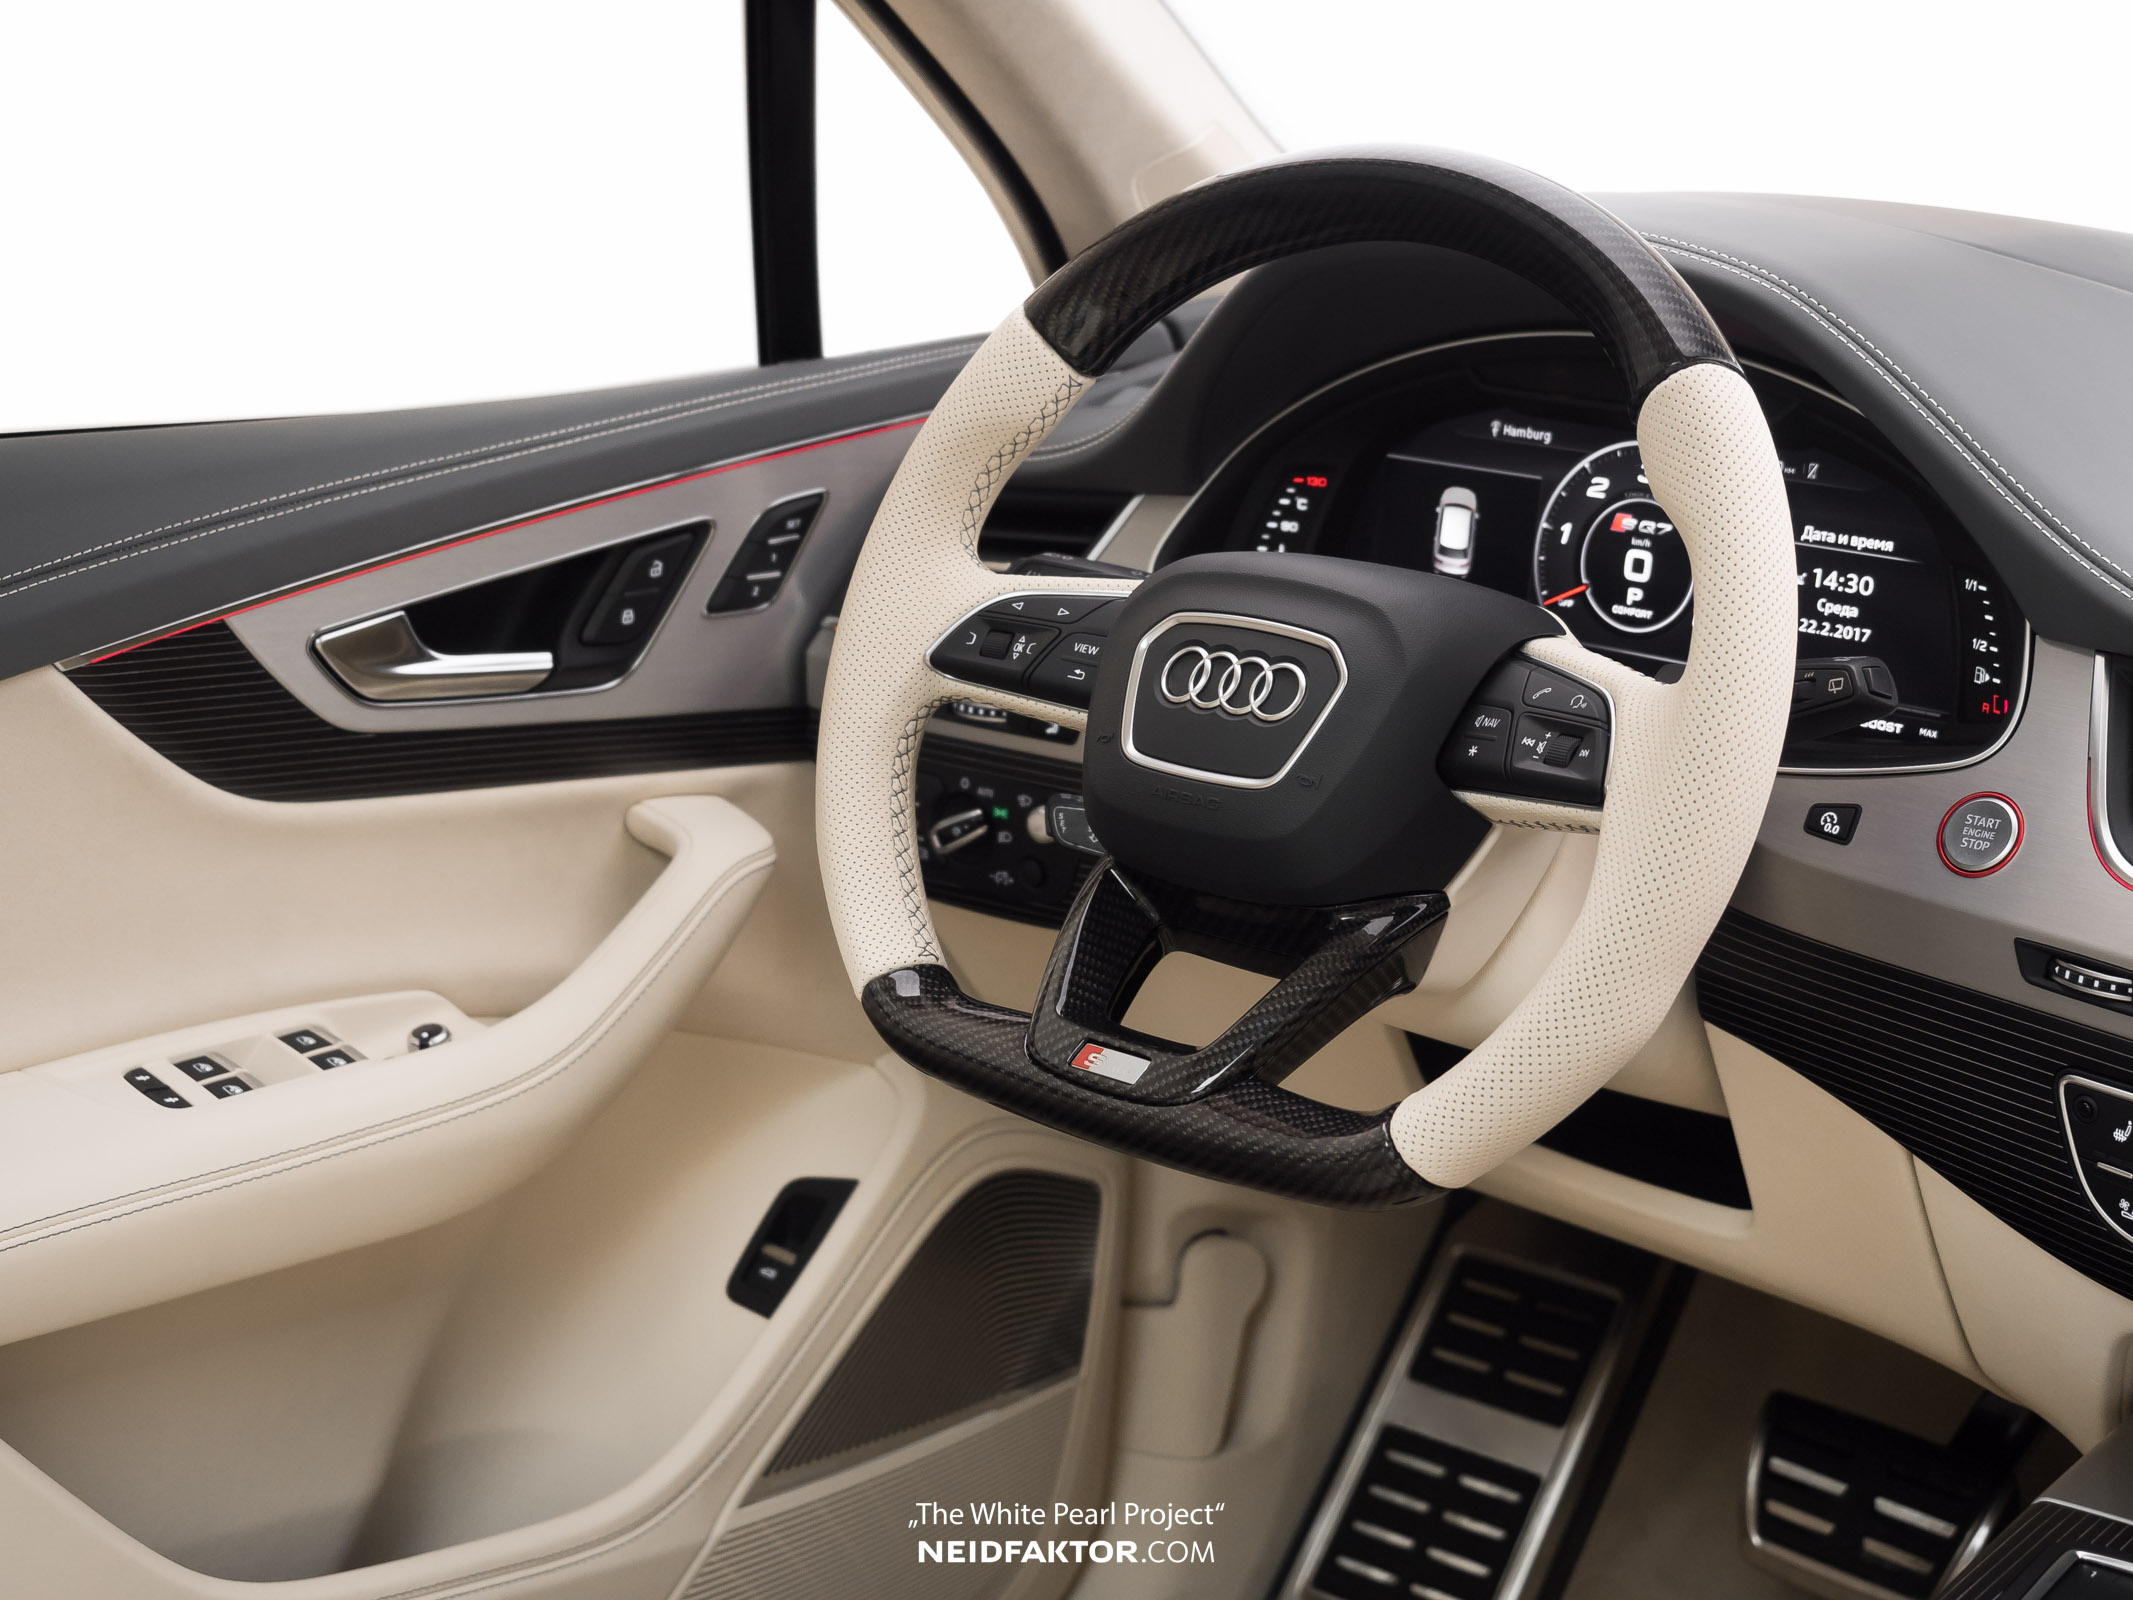 Audi Sq7 Gets Carbon Fiber And Cream Leather Interior From